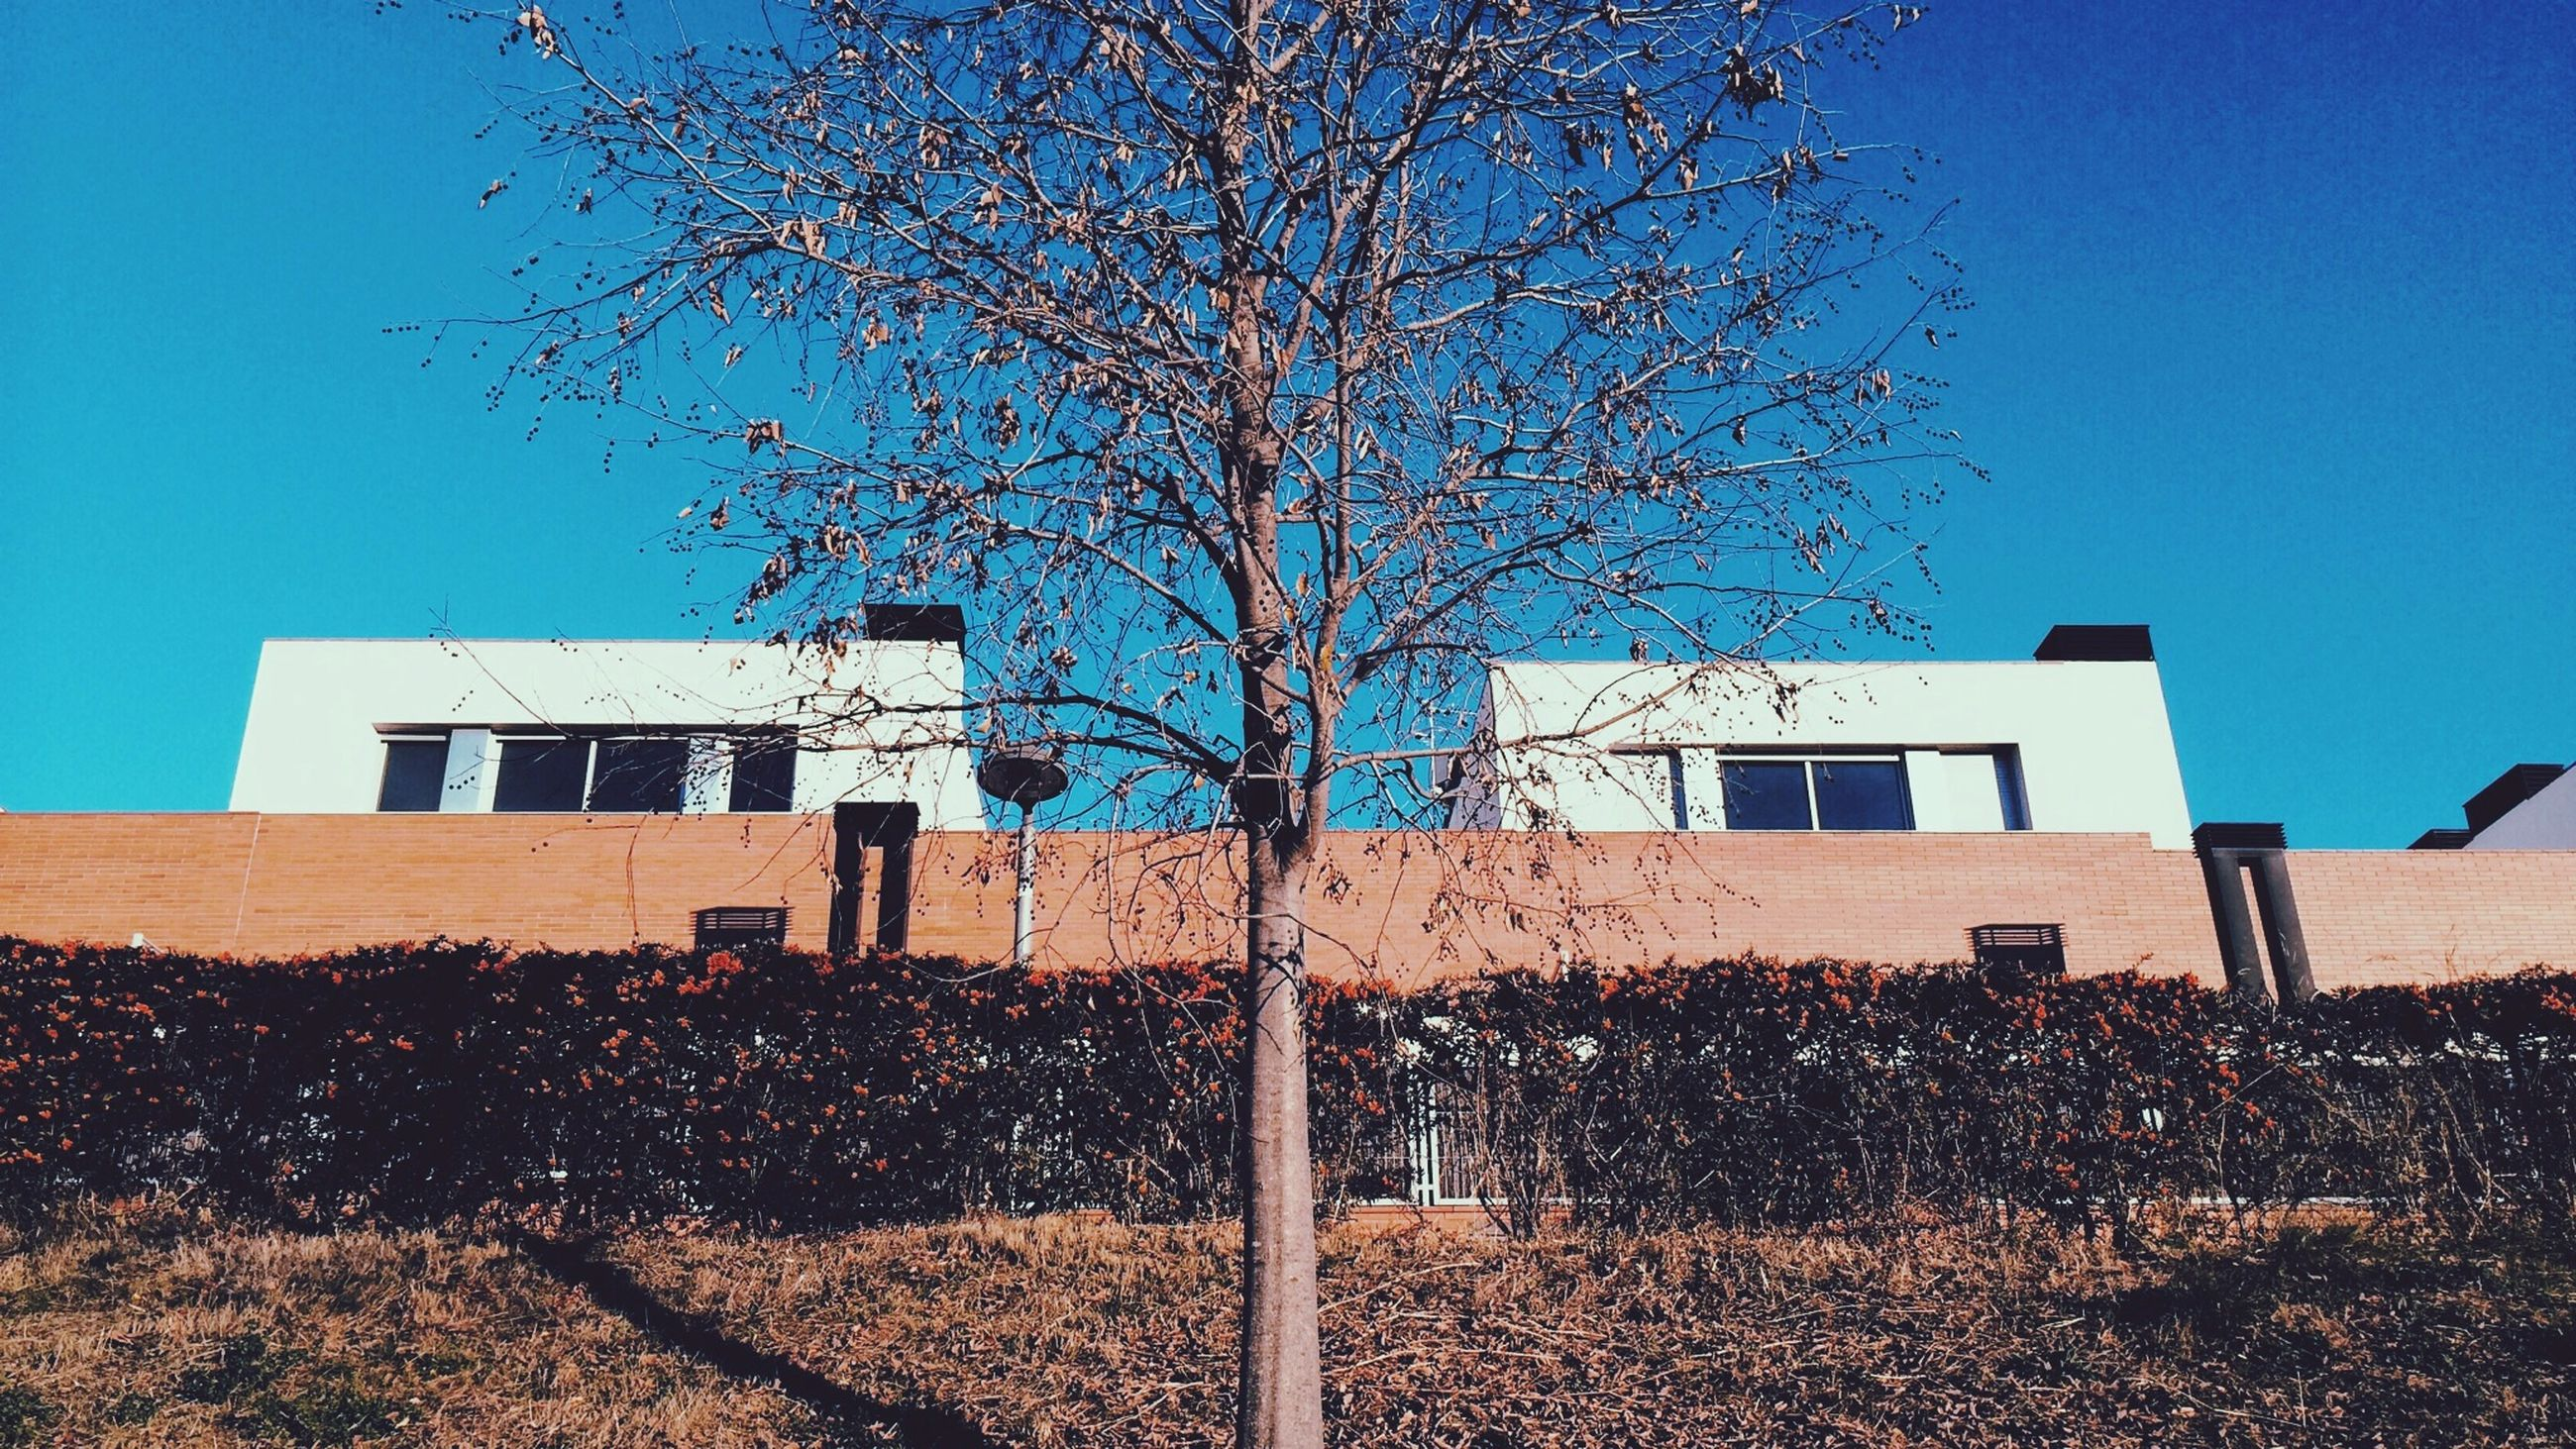 building exterior, architecture, built structure, clear sky, blue, bare tree, house, tree, window, residential structure, low angle view, sky, residential building, branch, sunlight, day, no people, outdoors, building, fence